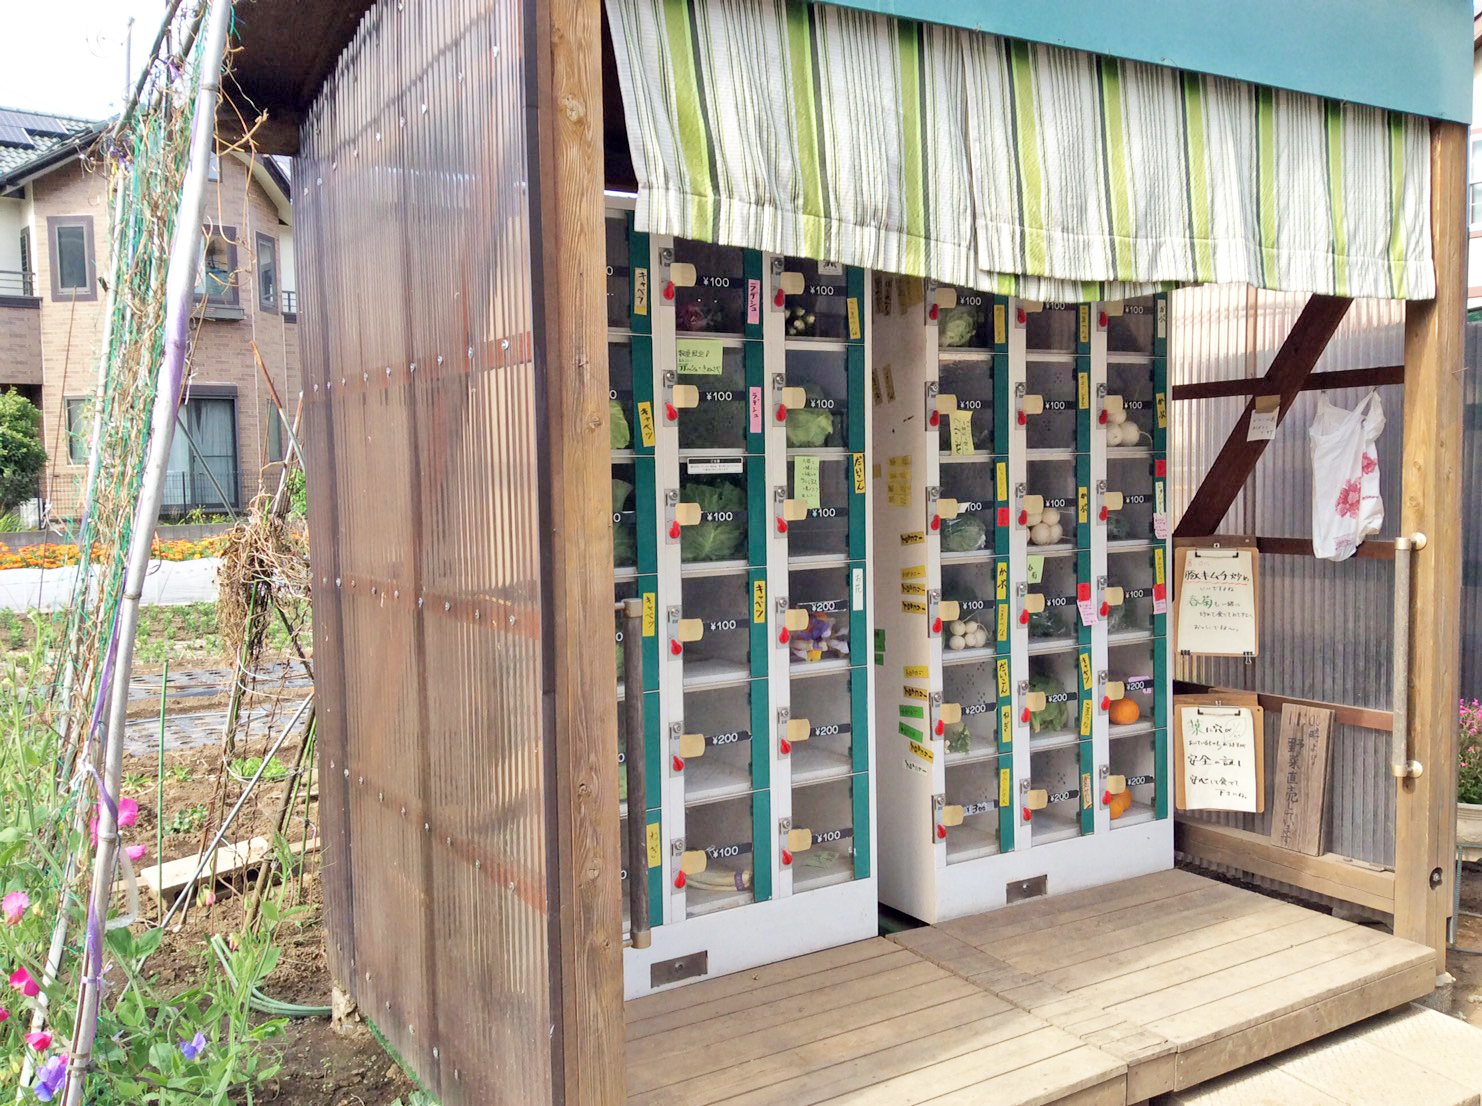 a vending machine for fresh local vegetables